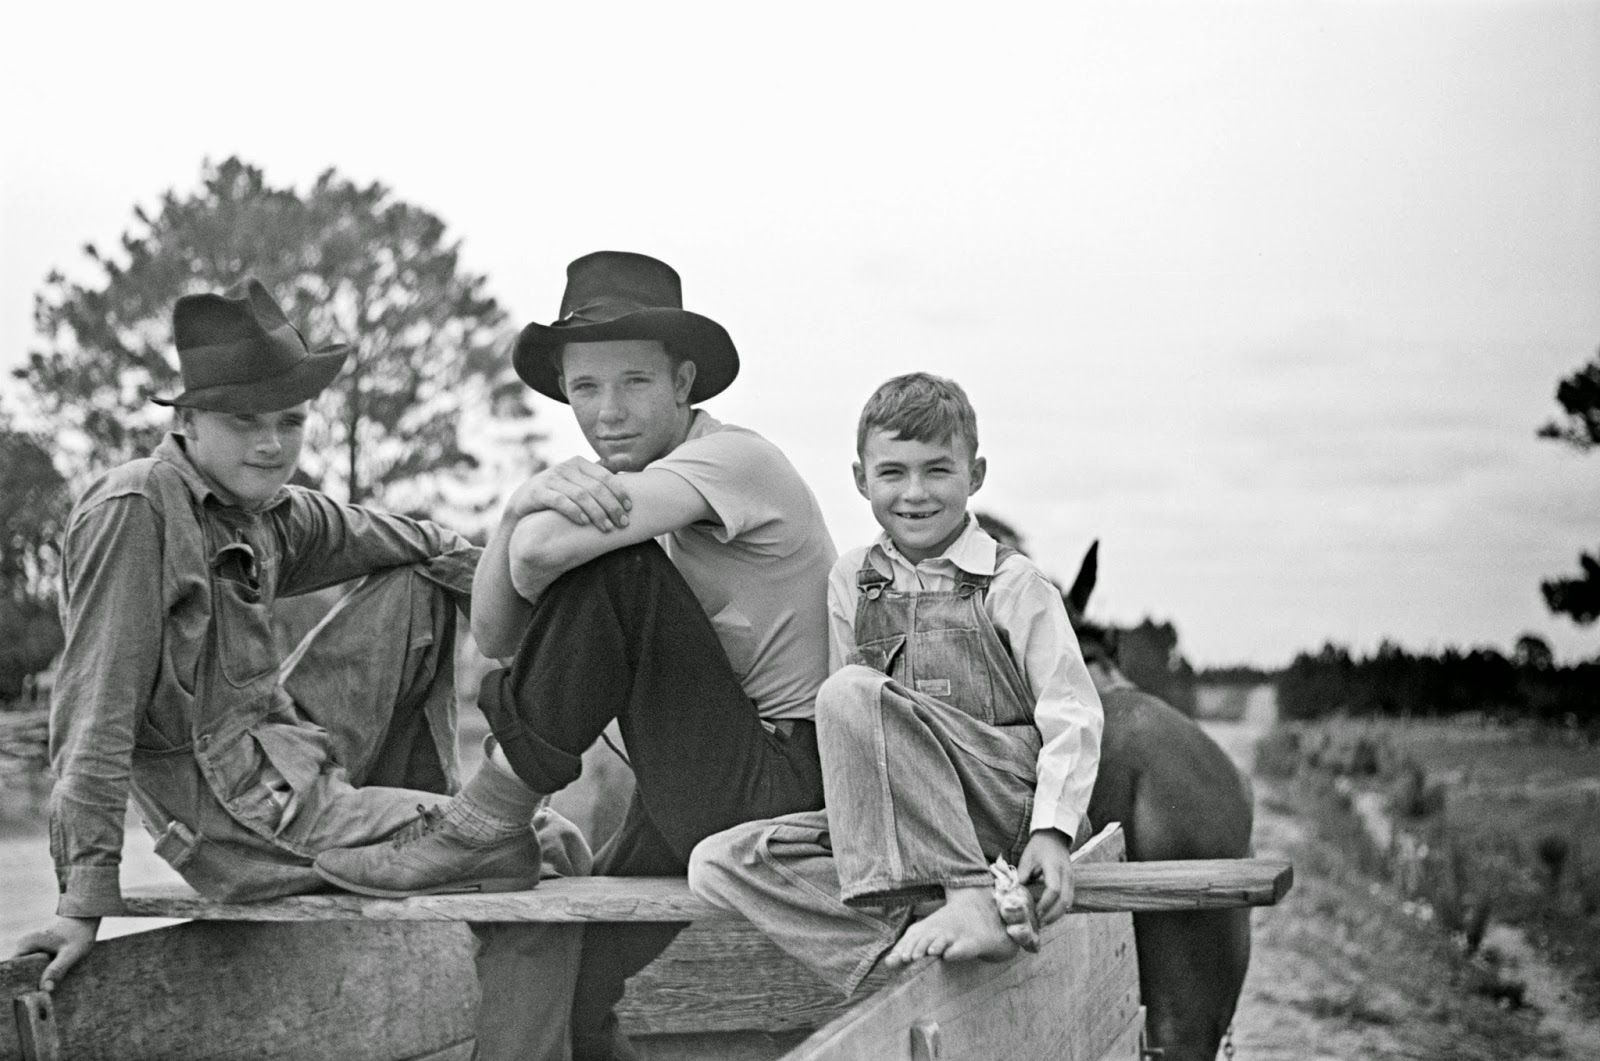 Farm boys at Irwinville Farms, Georgia, May 1938